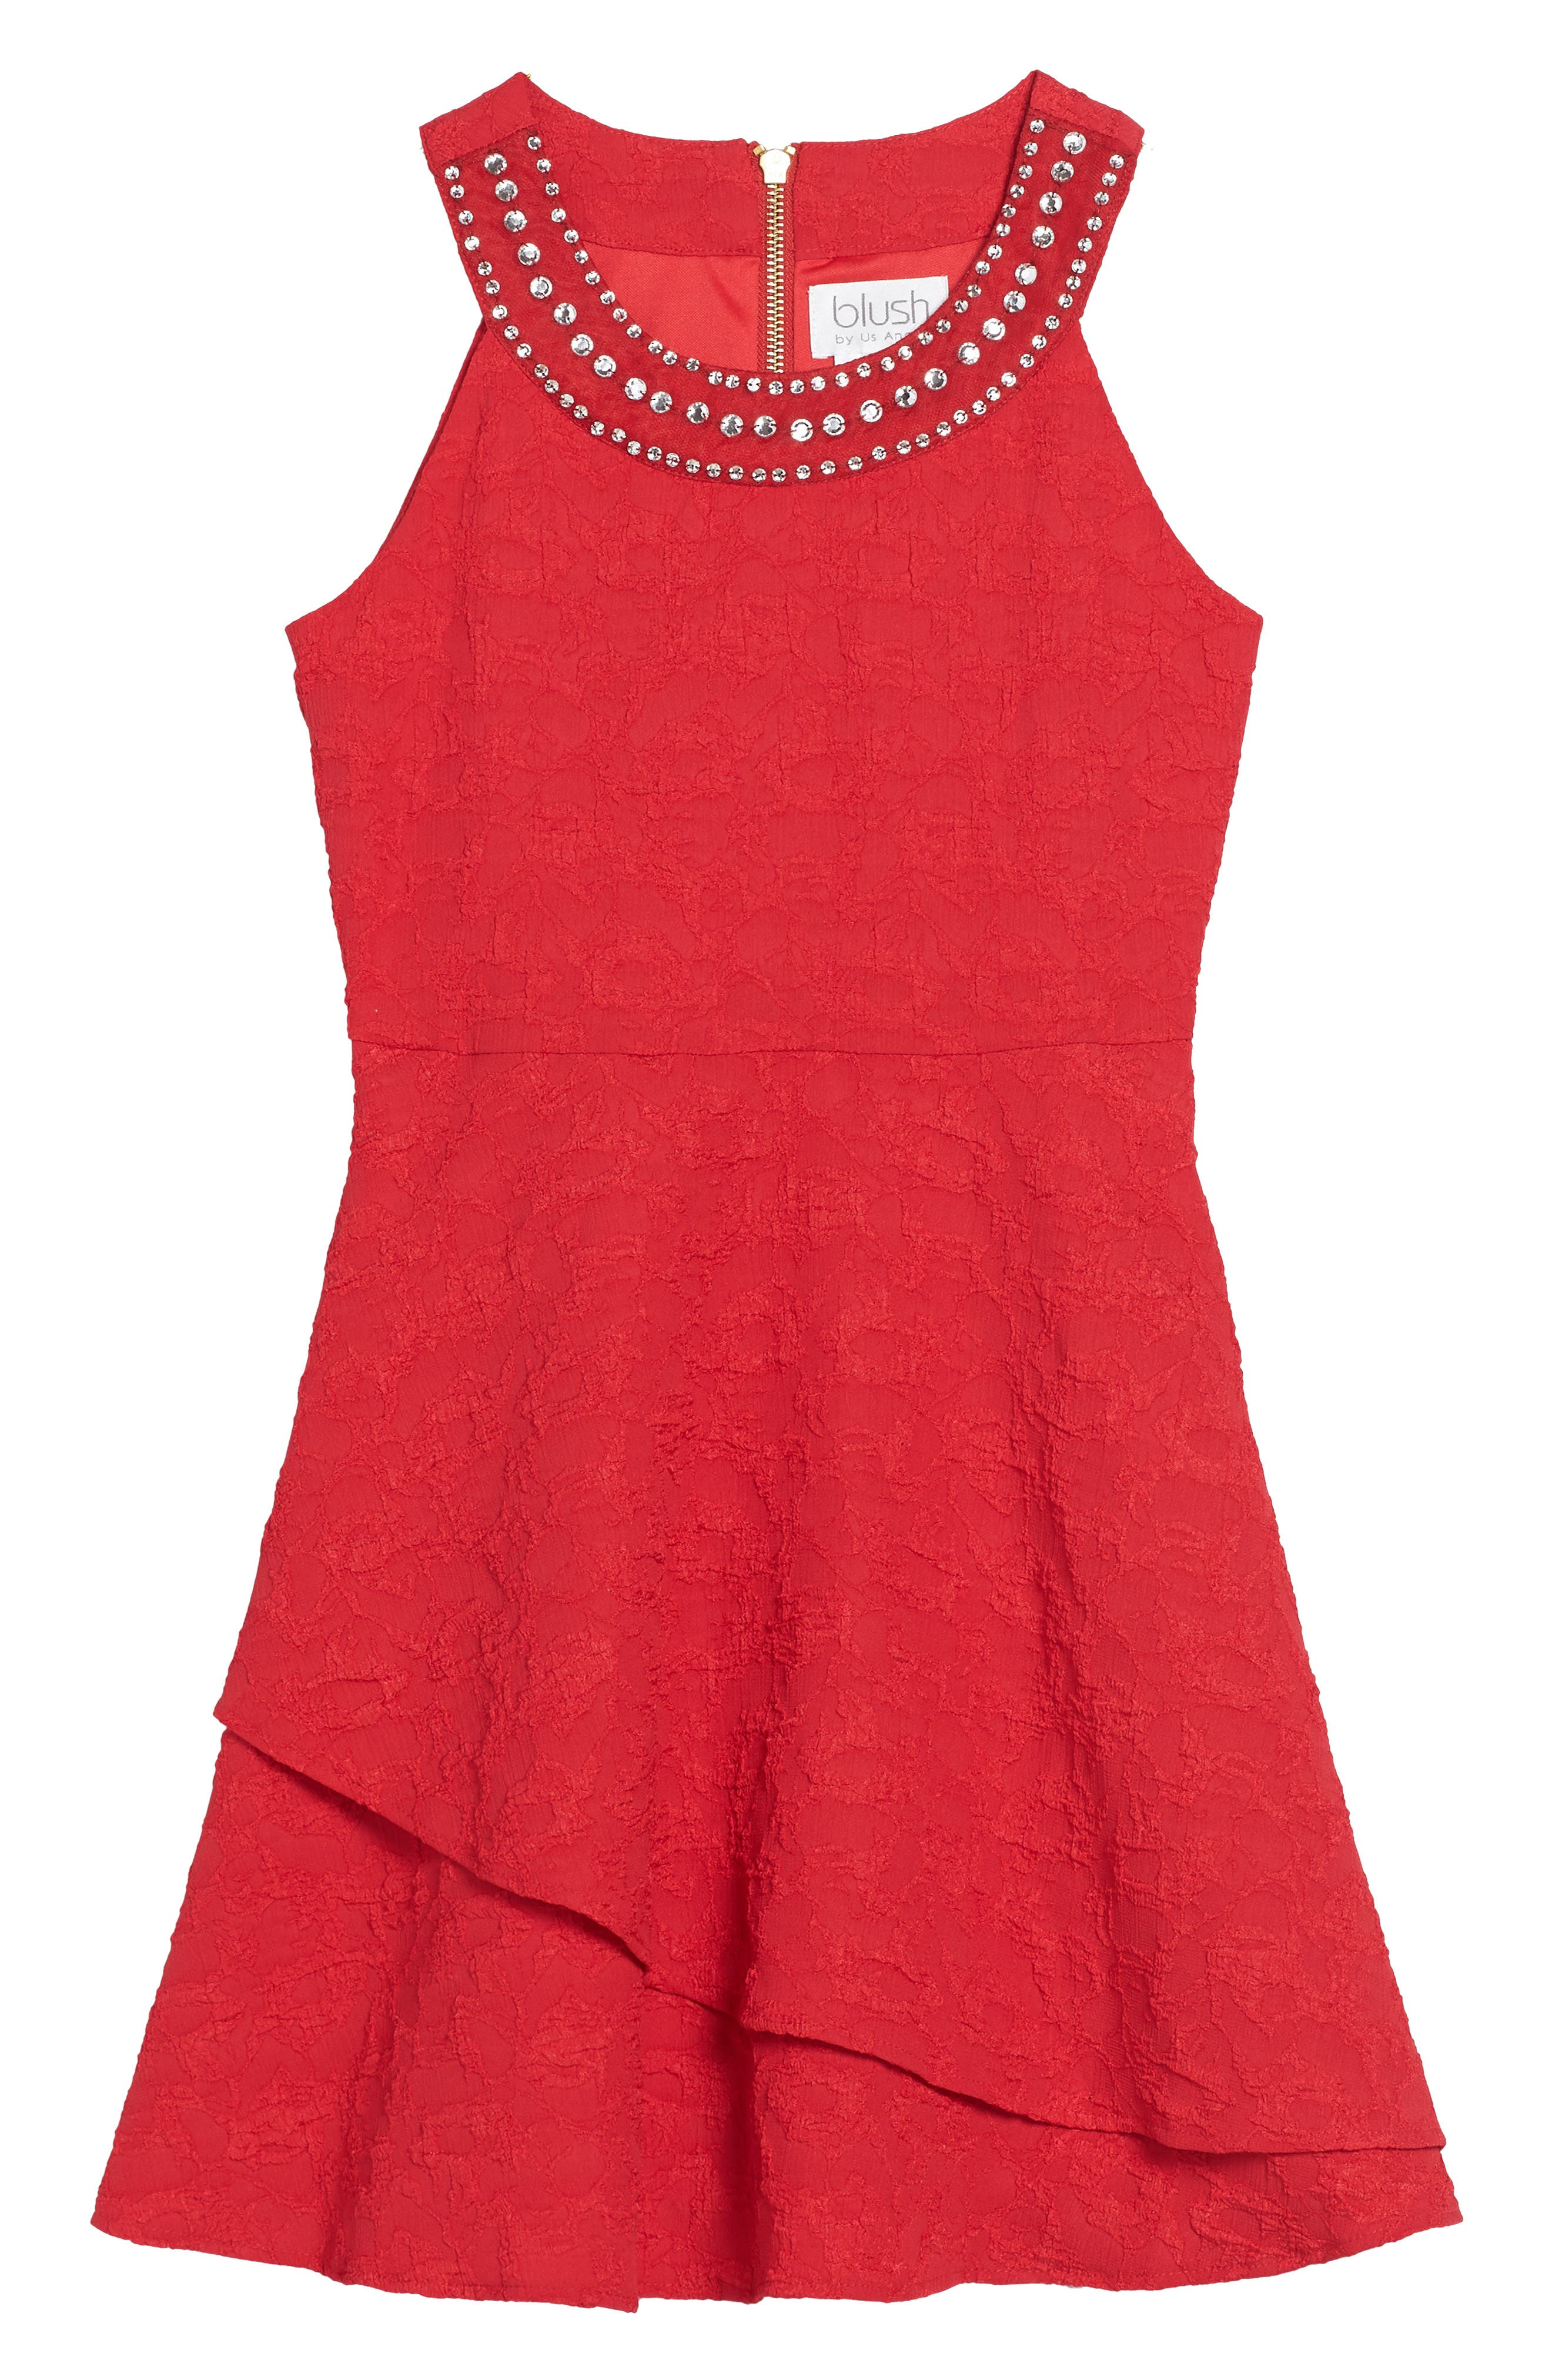 Jewel Neck Fit & Flare Dress,                         Main,                         color, Ruby